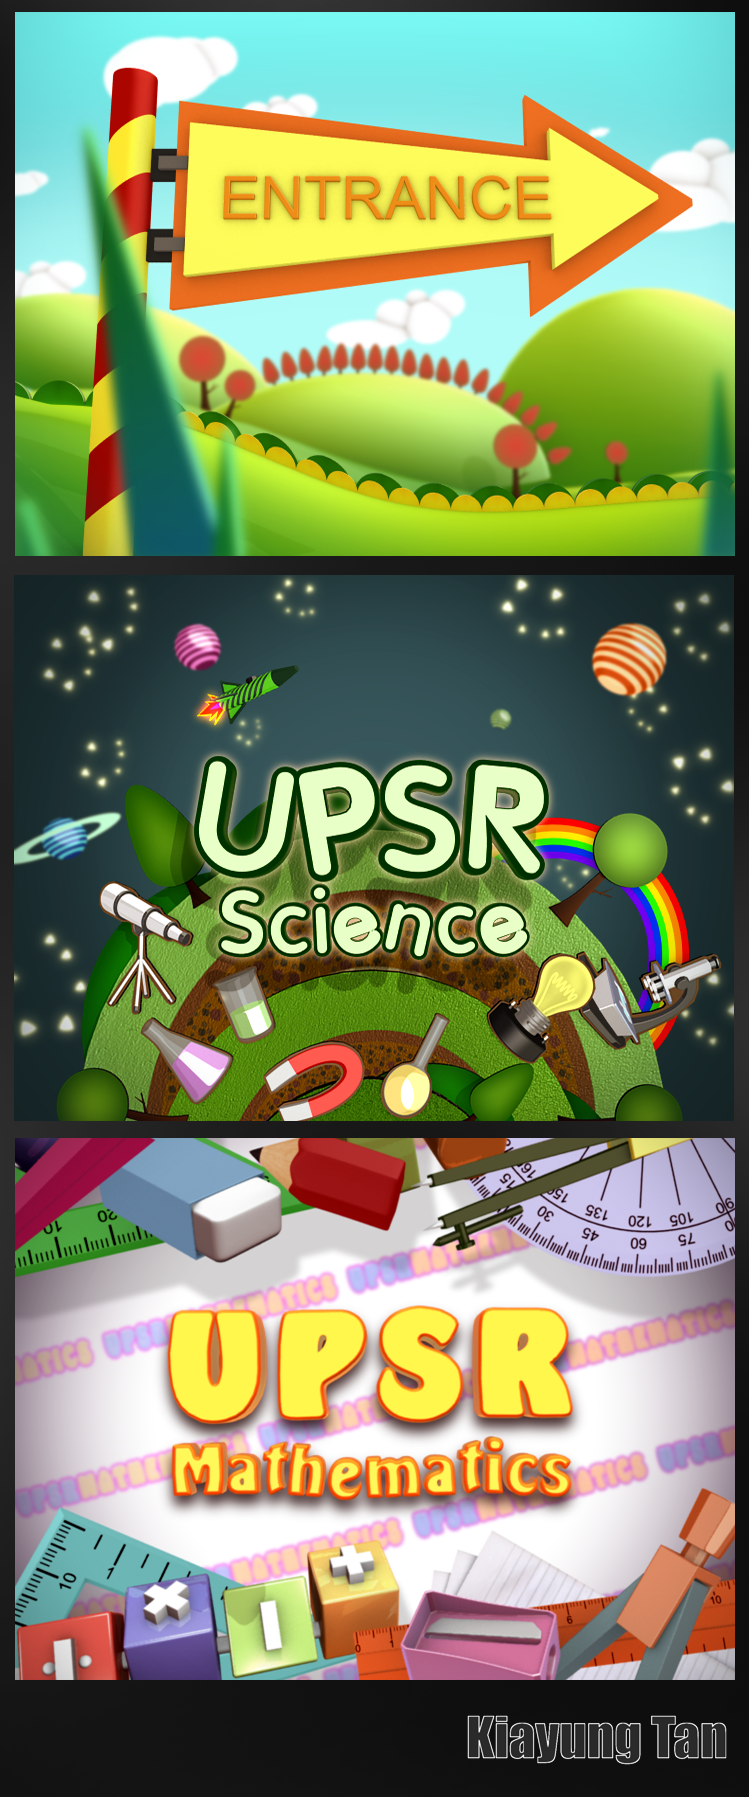 UPSR Opening Titles by kiayt